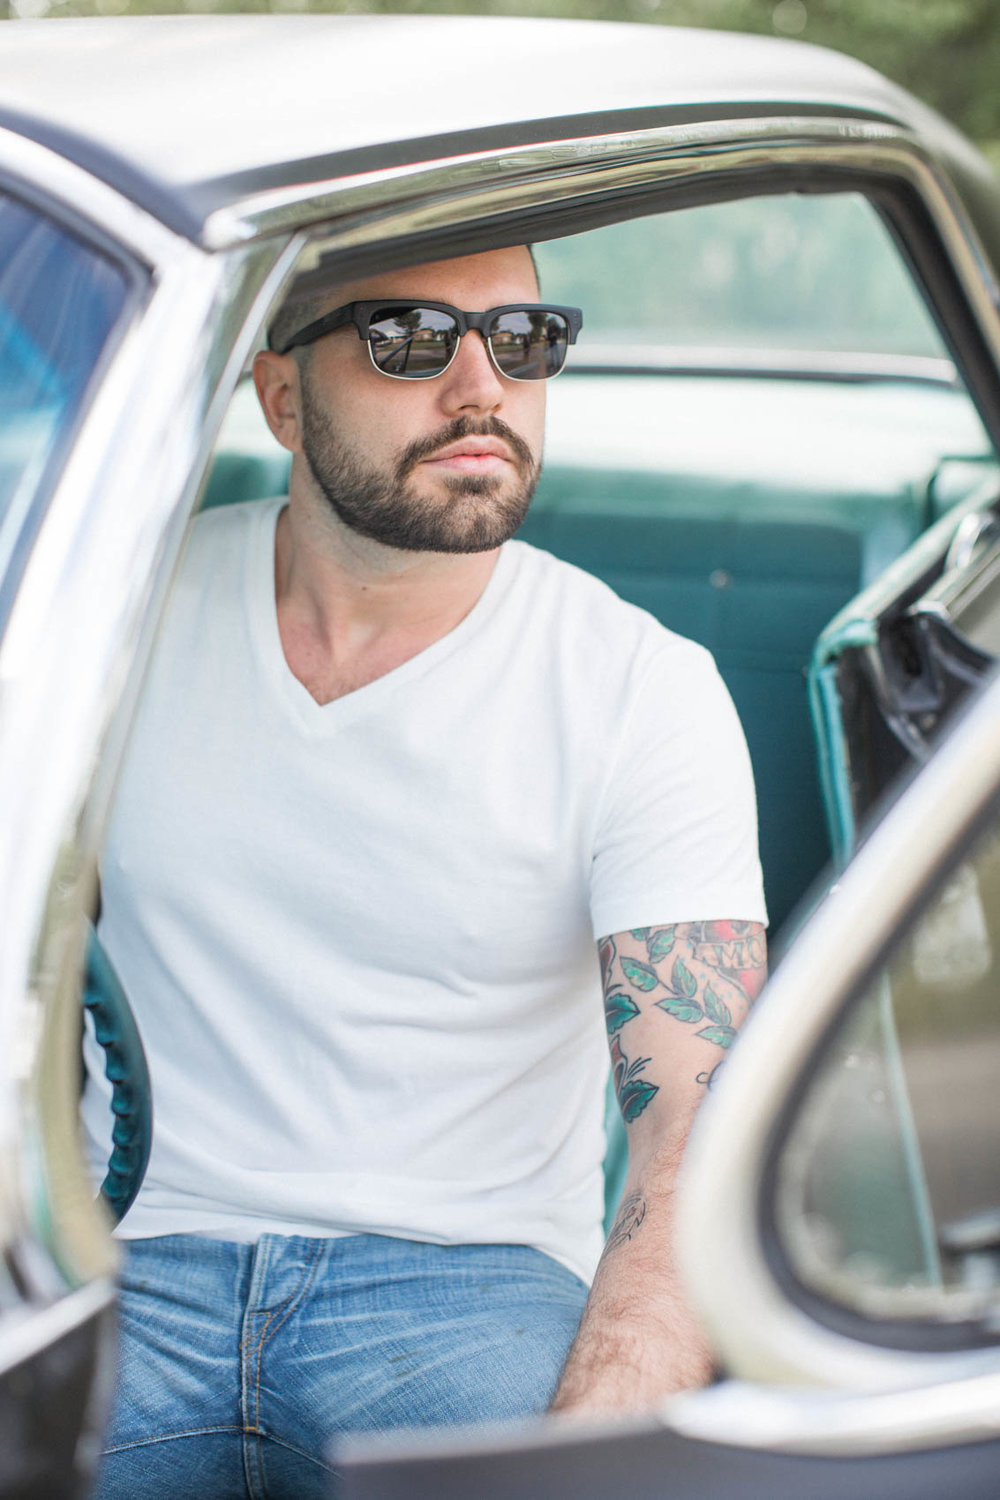 American white male with tattoos driving vintage car